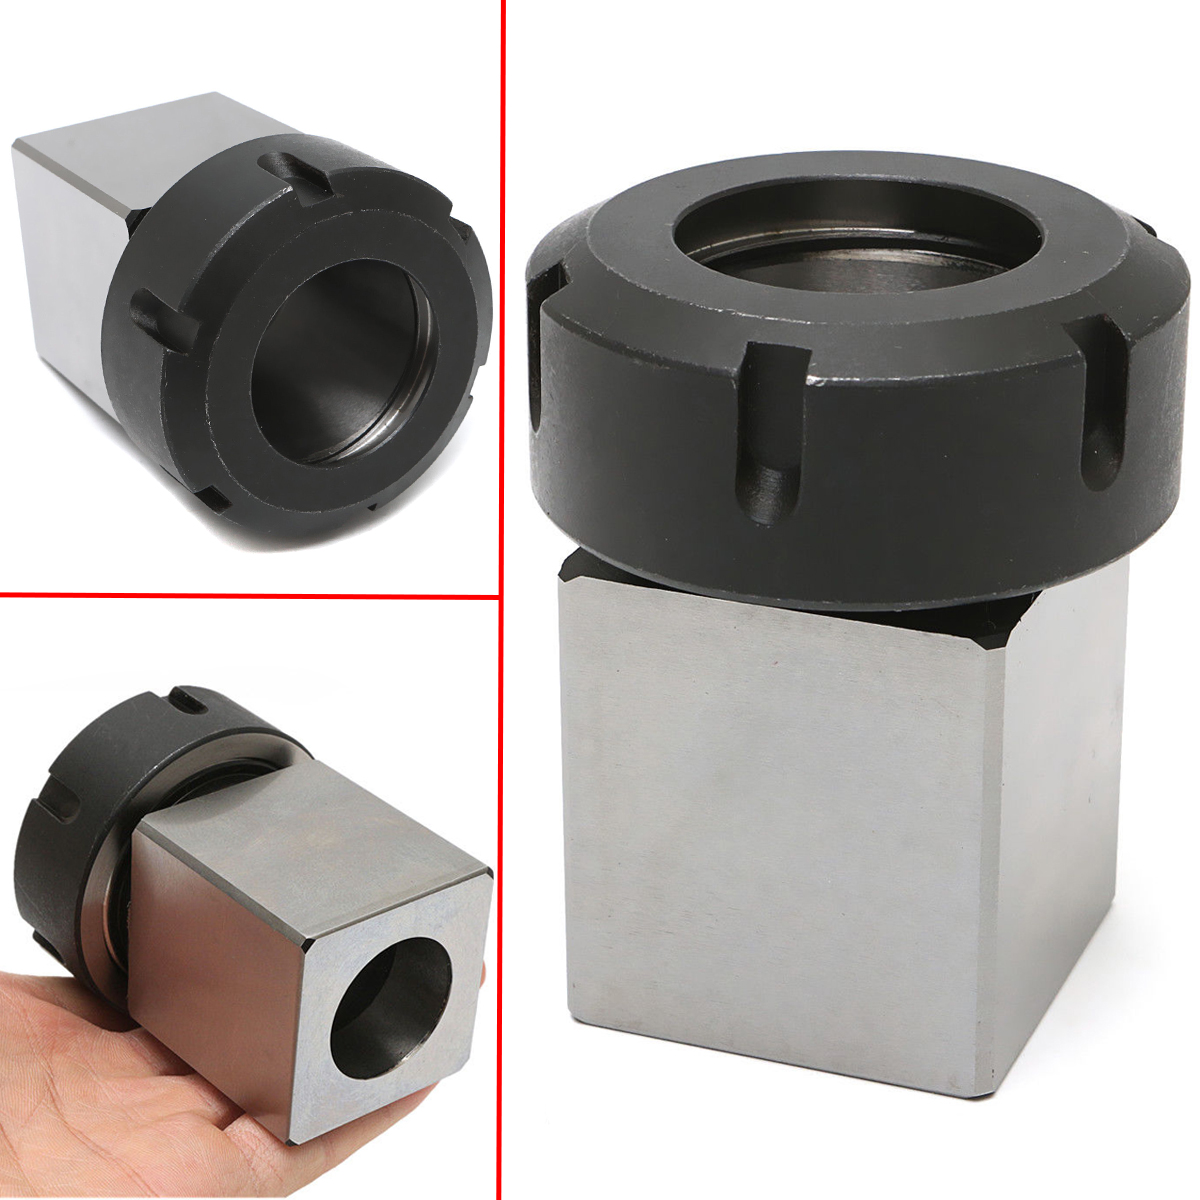 1pc ER-40 Square Collet Chuck Holder Mayitr 3900-5125 Block For Lathe Engraving Machine 1pc square er40 collet chuck block holder 3900 5125 for cnc lathe engraving machine cross hole drilling